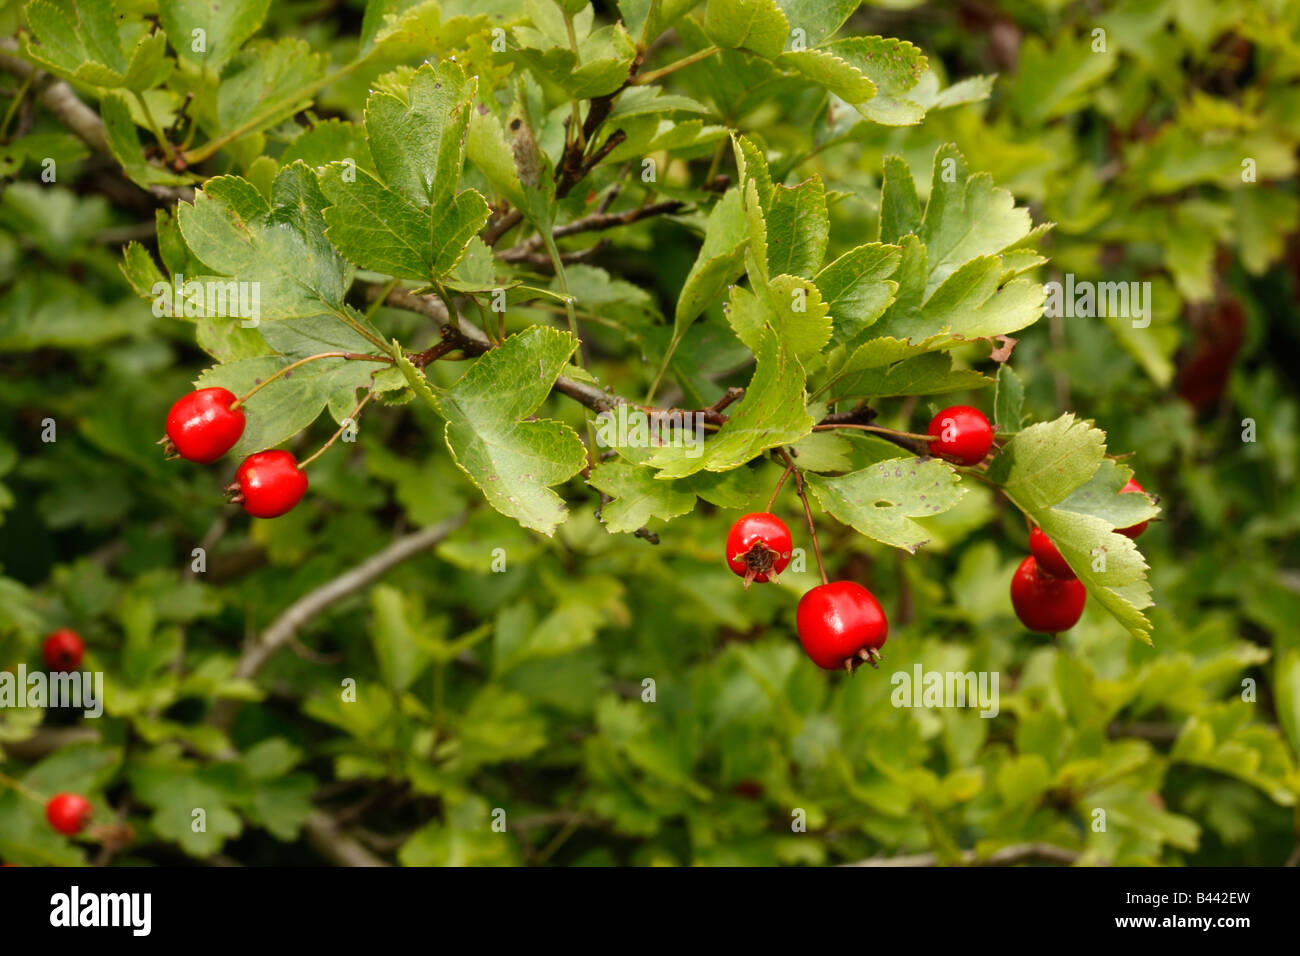 wei dorn baum oder strauch crataegus monogyna beeren midlands uk stockfoto bild 19758785 alamy. Black Bedroom Furniture Sets. Home Design Ideas